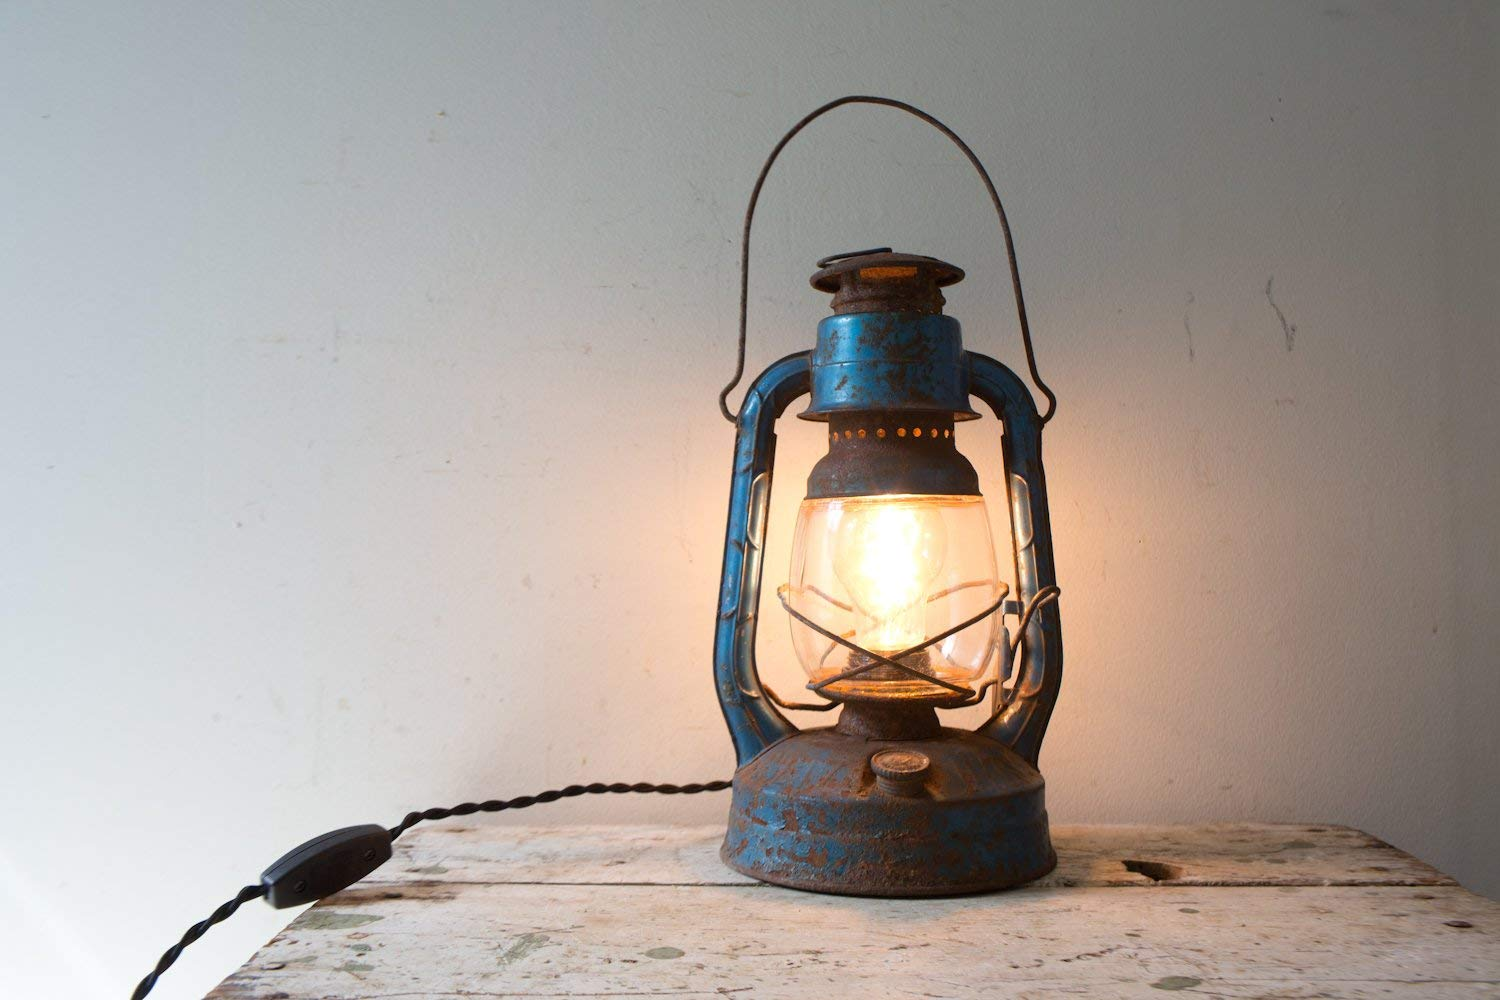 Diy Kerosene Lamp Cheap Electric Kerosene Lamp Find Electric Kerosene Lamp Deals On